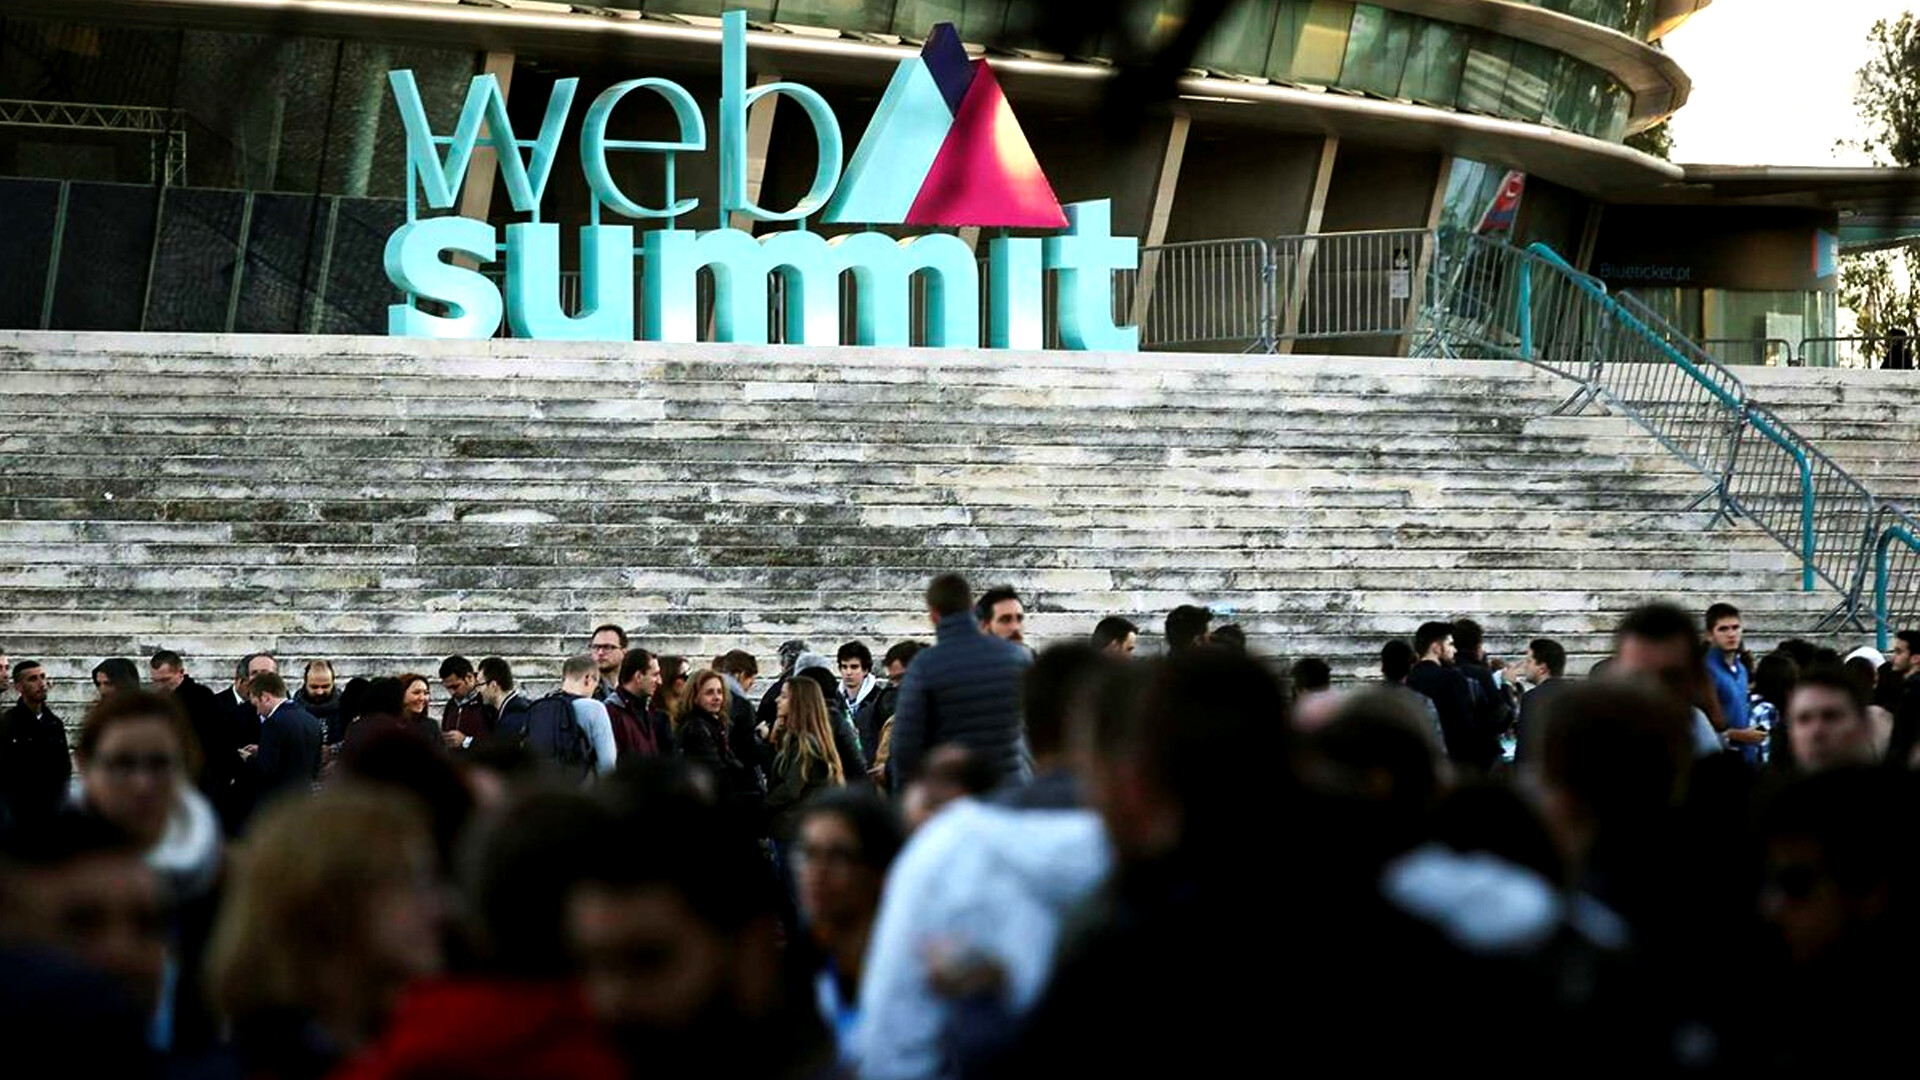 Websummit itstore4.jpg